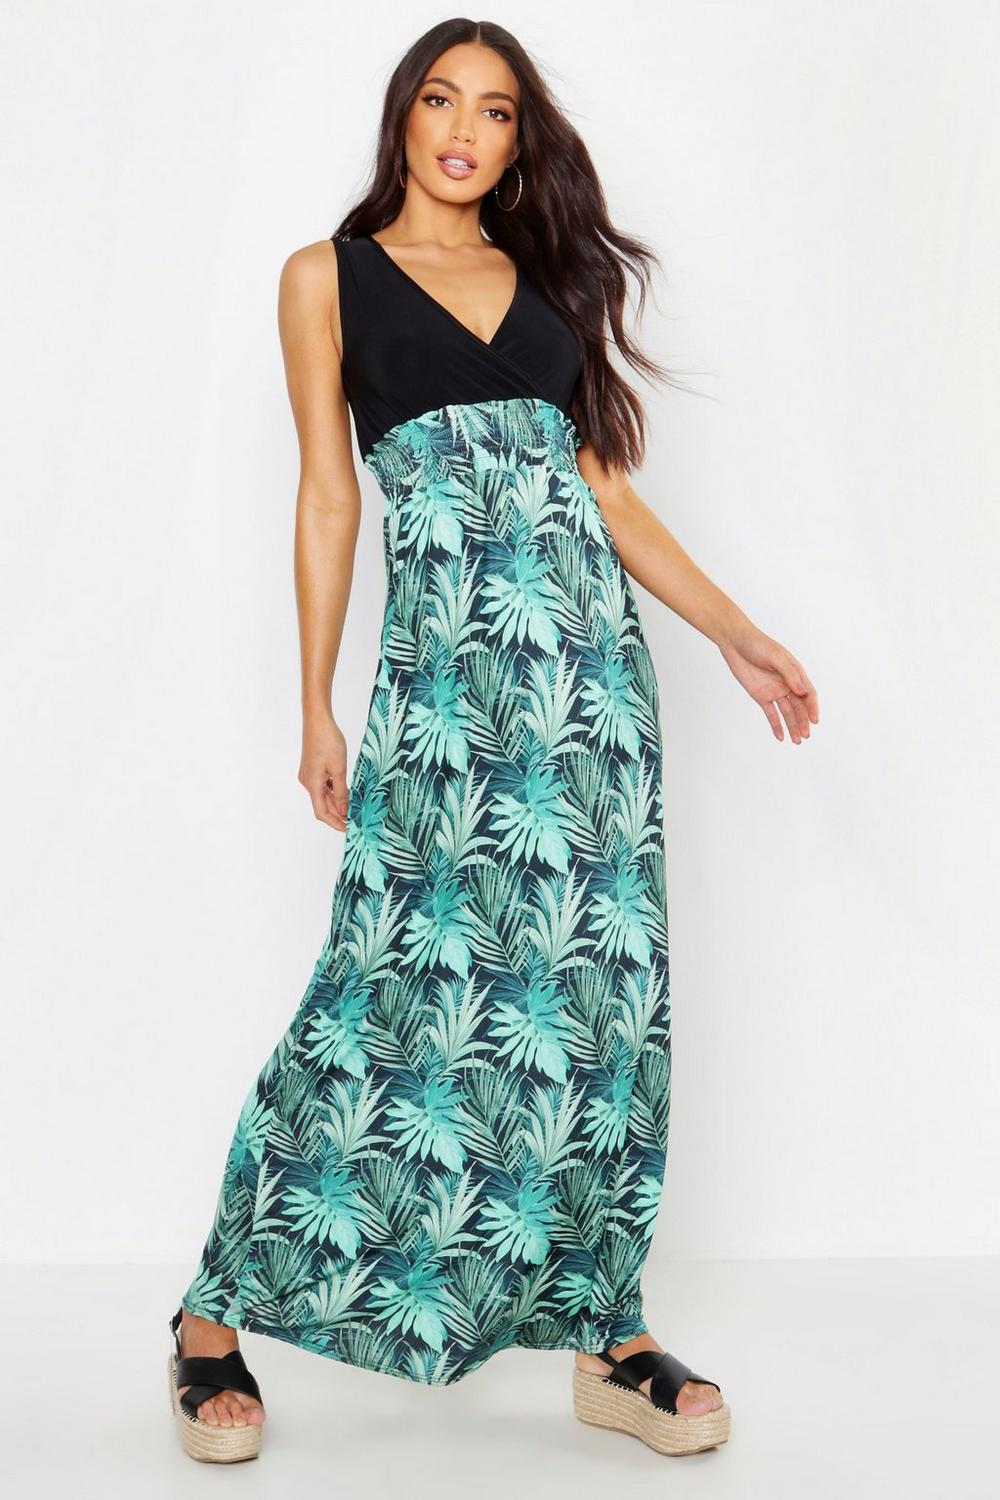 6274a4316c33 Womens Black Palm Print Maxi Dress. Hover to zoom